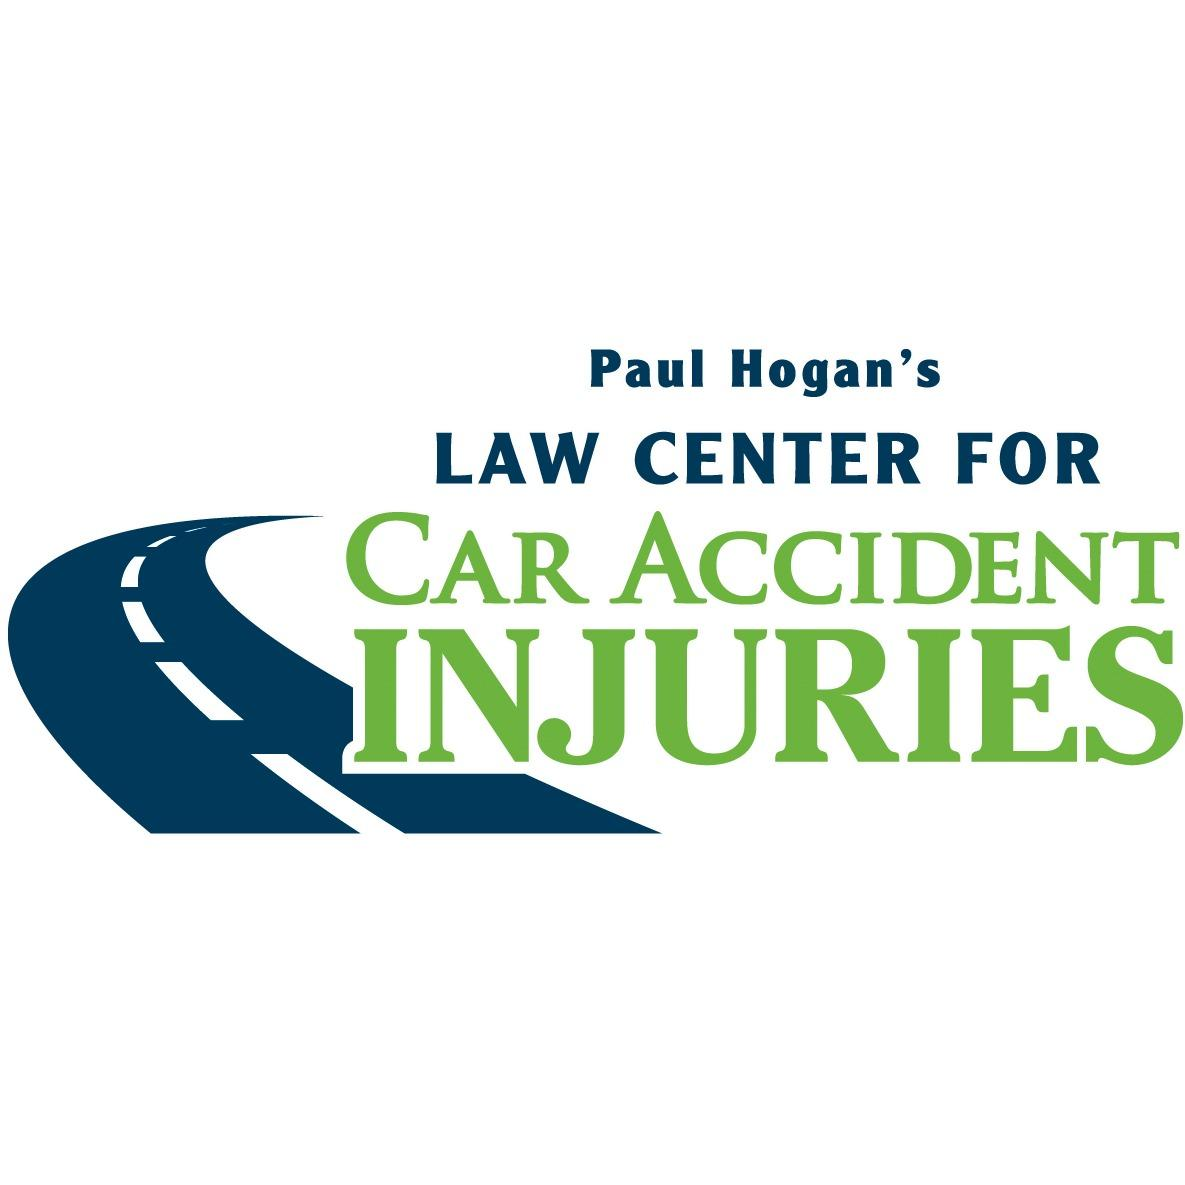 Paul Hogan's Law Center For Car Accident Injuries